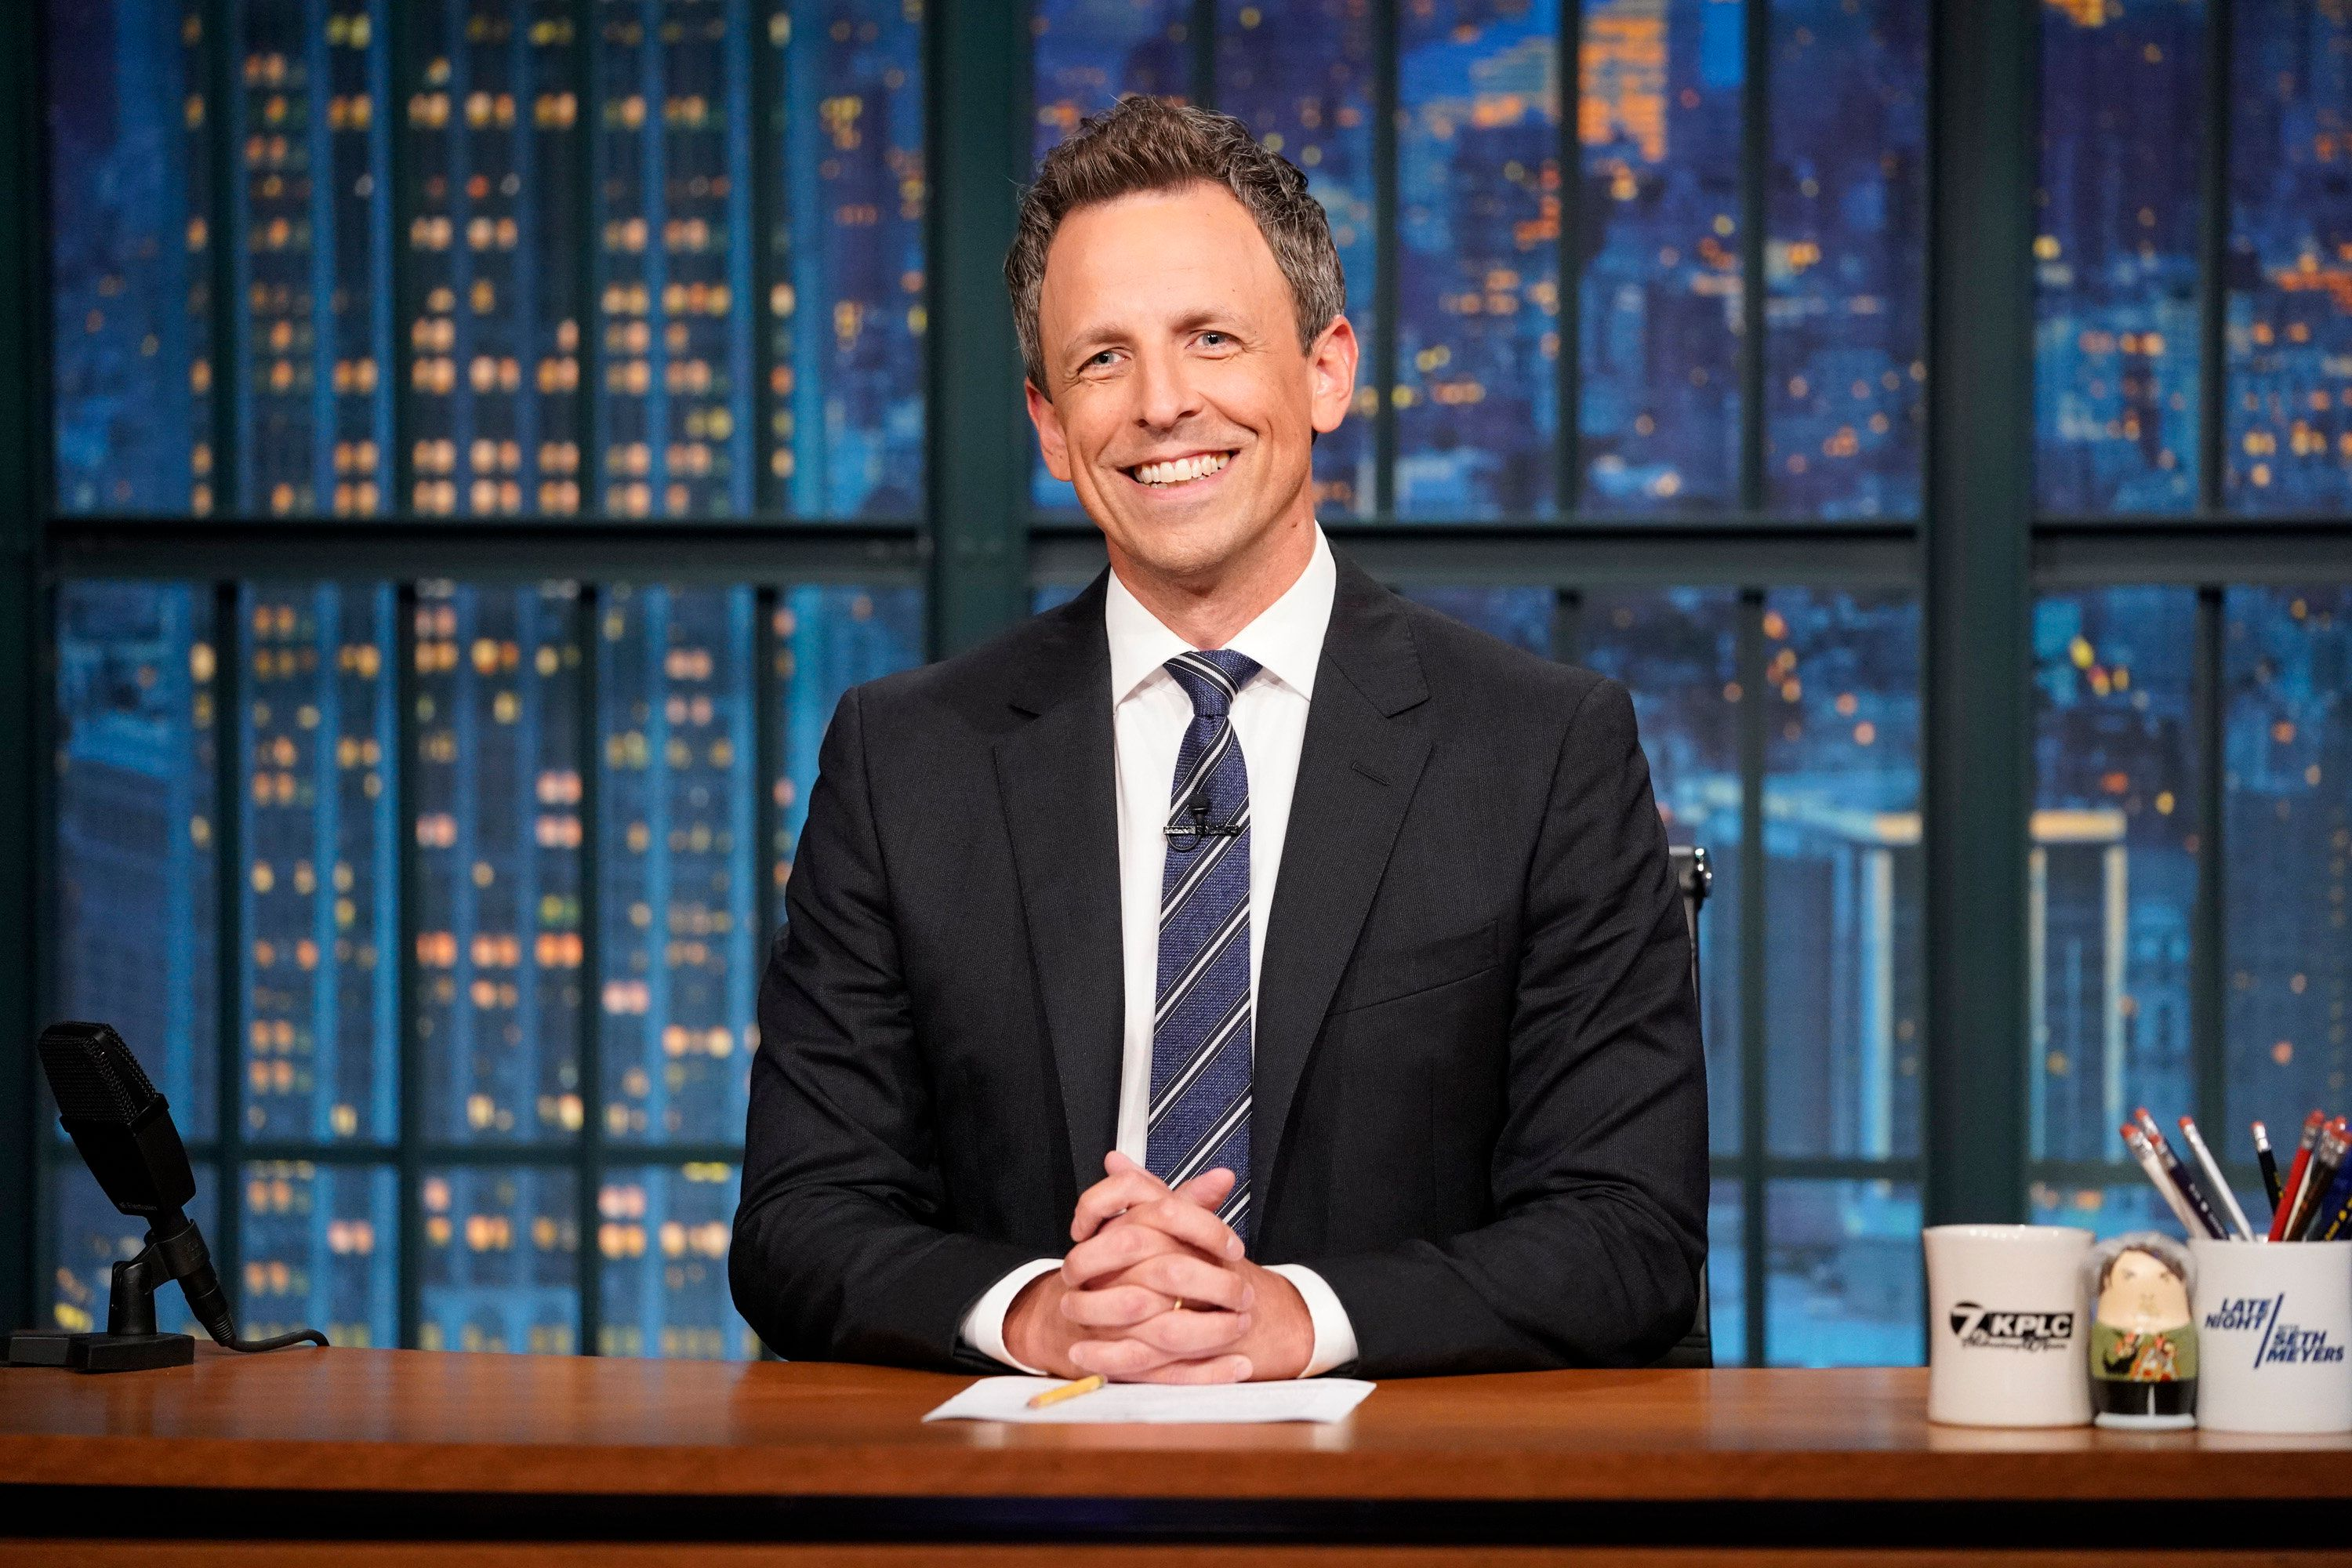 LATE NIGHT WITH SETH MEYERS -- Episode 698 -- Pictured: Host Seth Meyers during the monologue on July 26, 2018 -- (Photo by: Lloyd Bishop/NBC/NBCU Photo Bank via Getty Images)